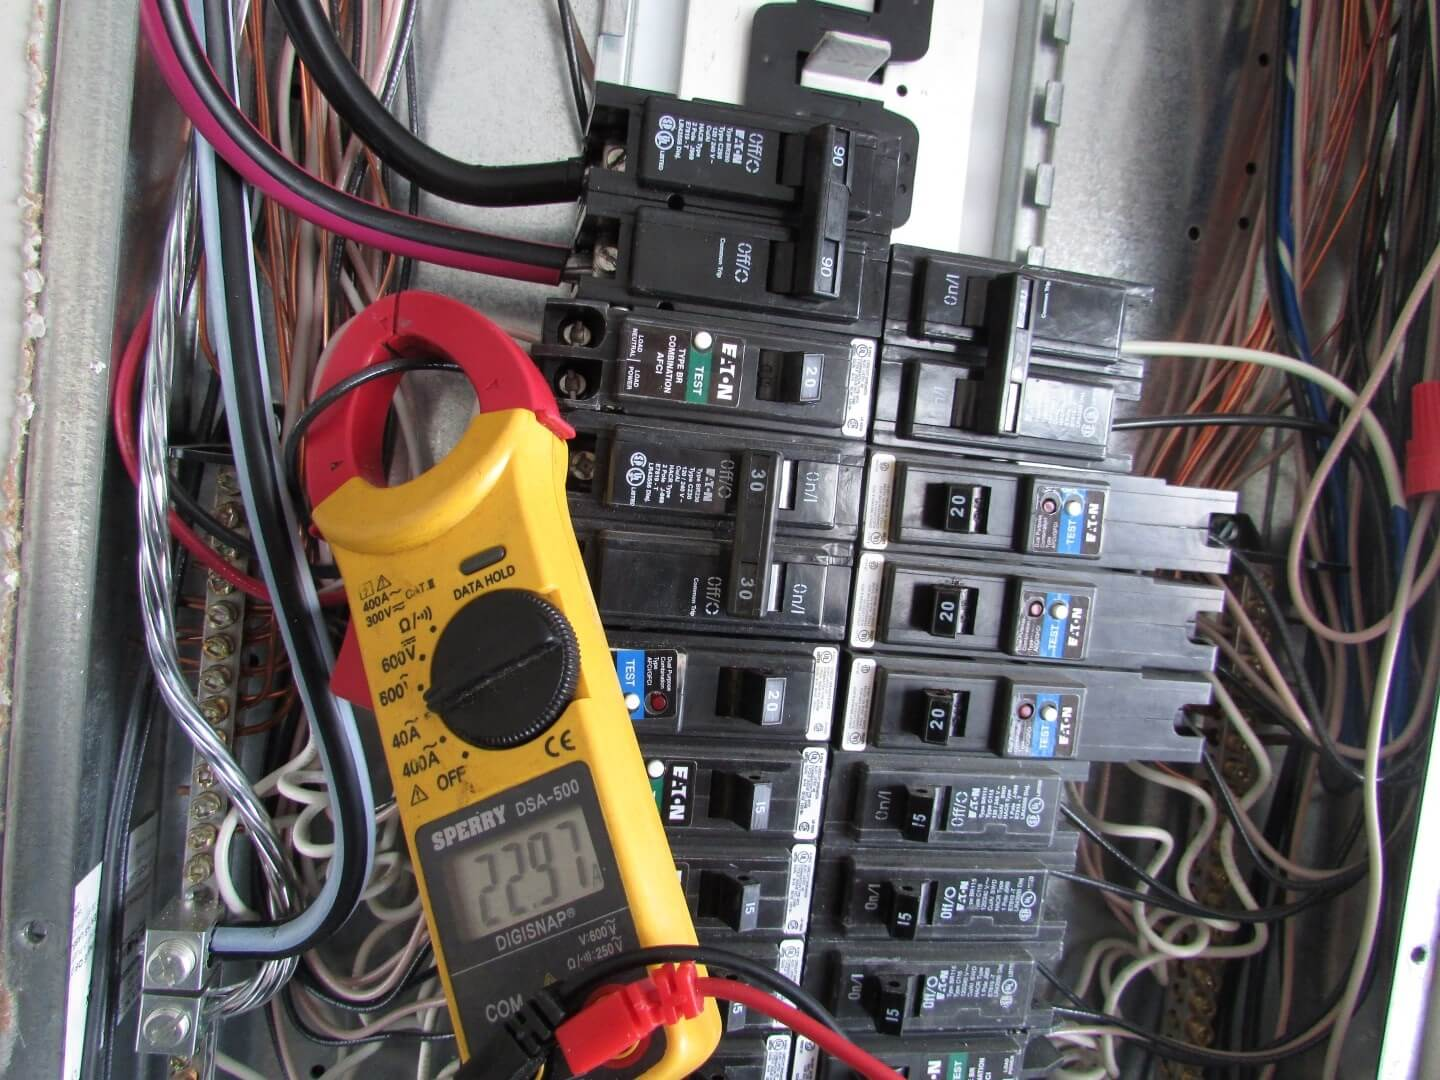 hight resolution of clamp meter on overloaded circuit breaker